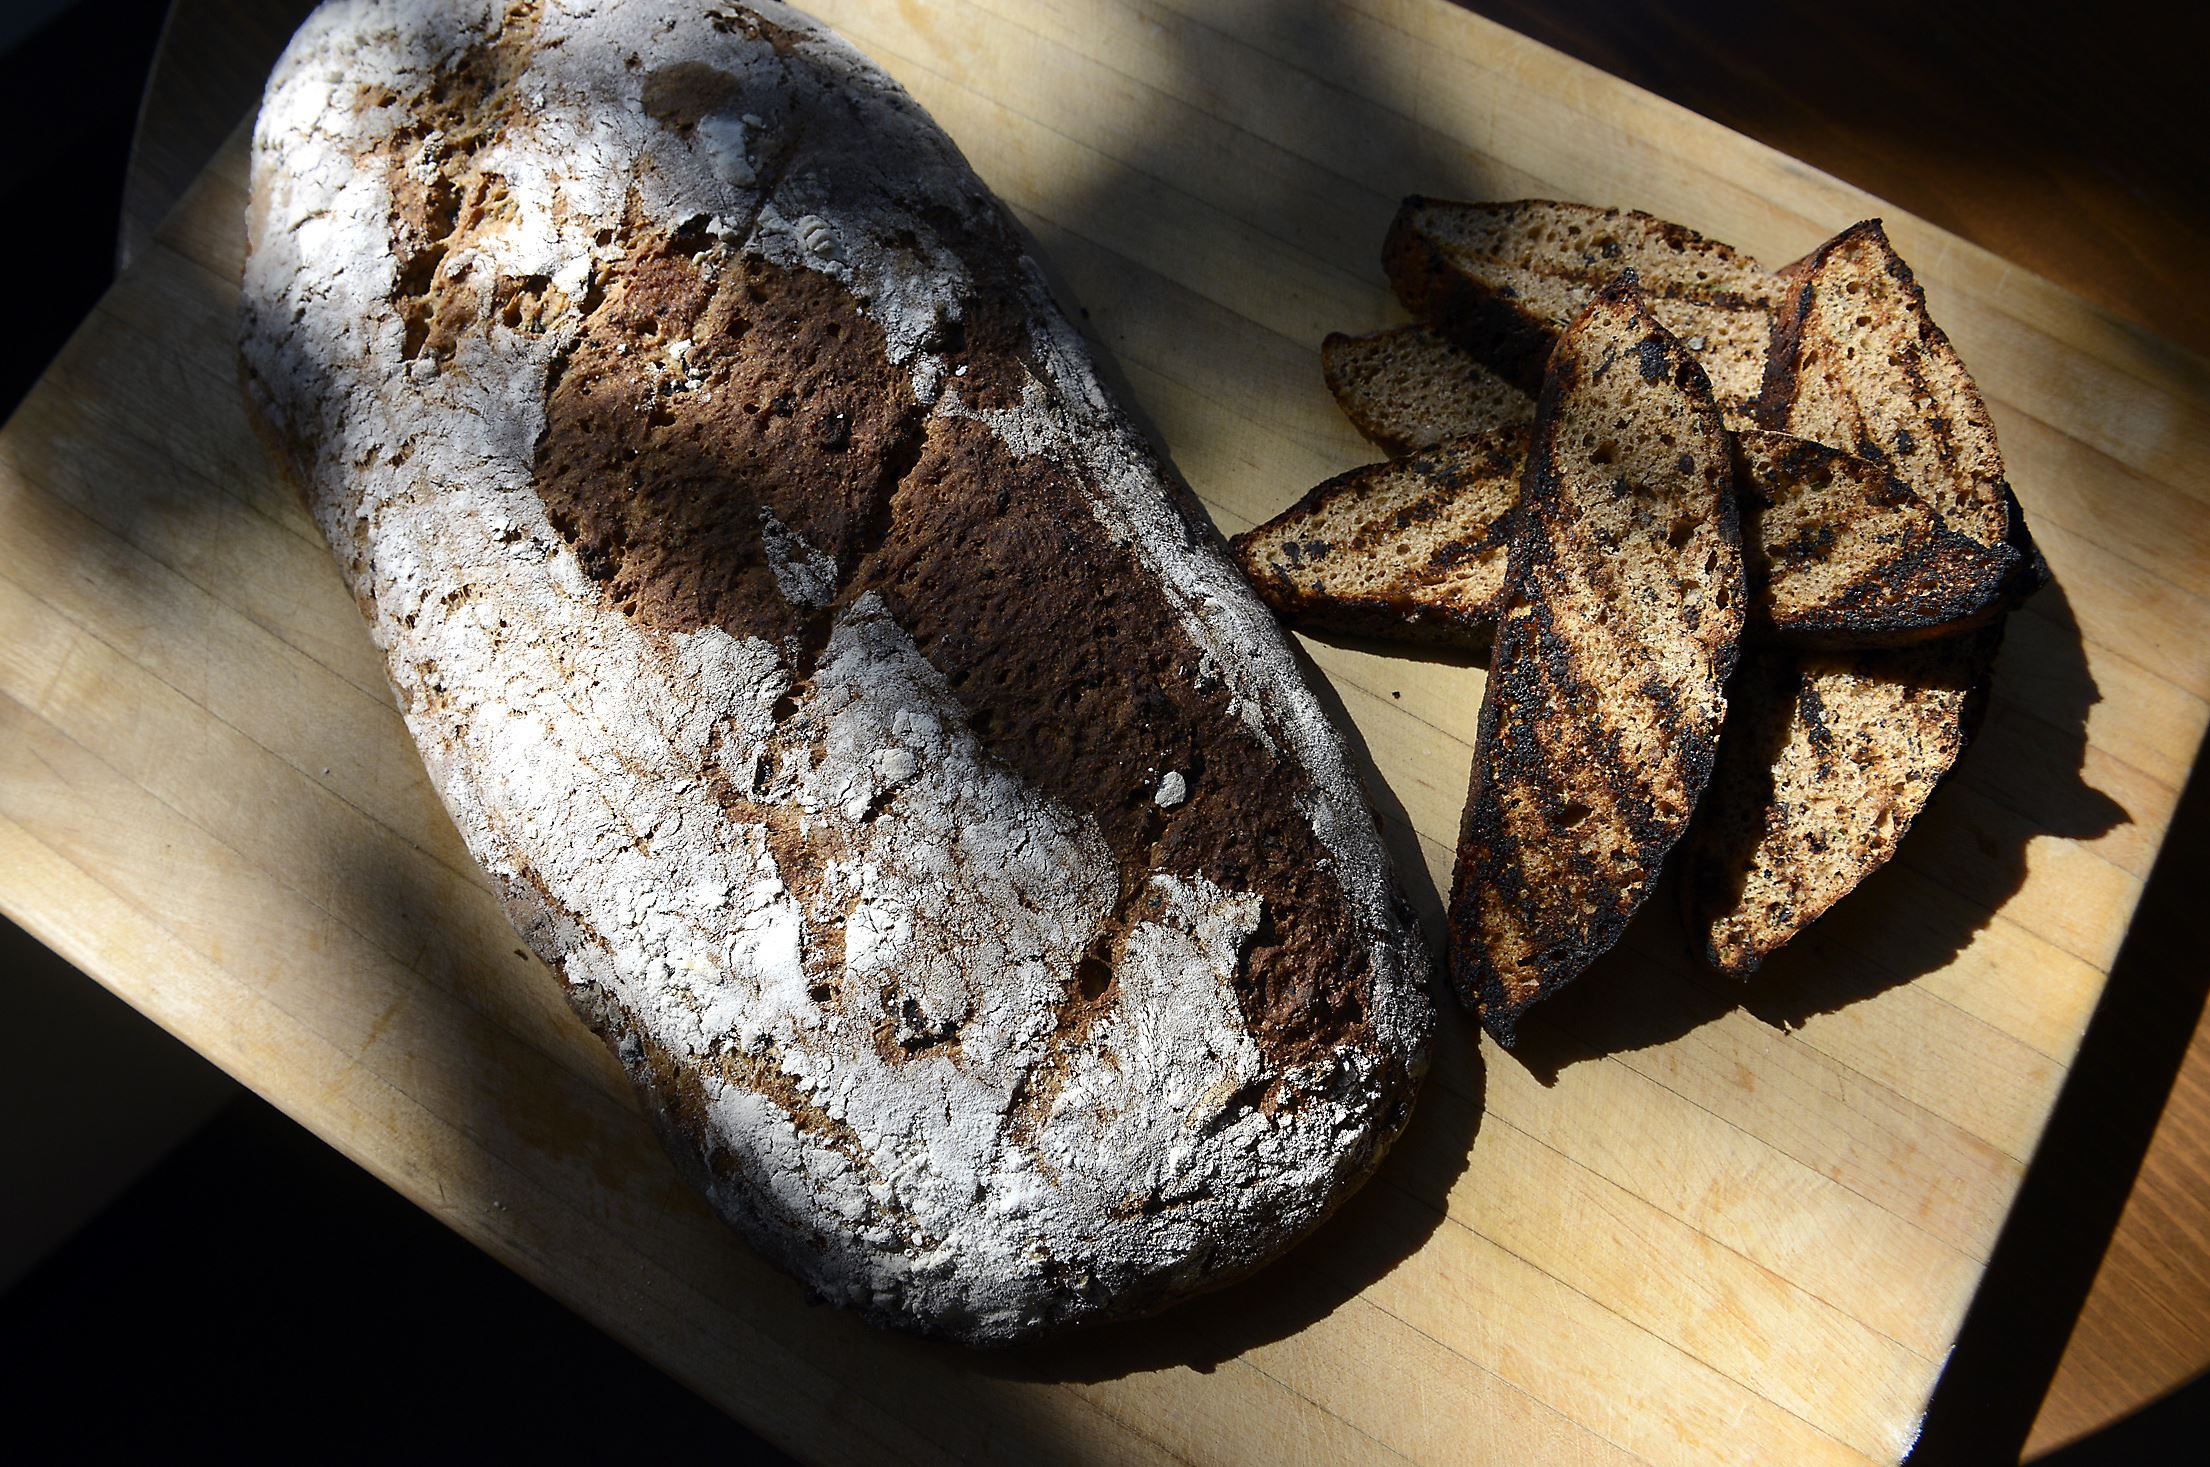 20140828bwWheatFood01 Whole wheat olive bread made from organic whole wheat bread flour from the Weatherbury Farm in Avella. Made at The Porch at Schenley by Kevin Hermann, Executive Chef. FOOD story by virginia phillips